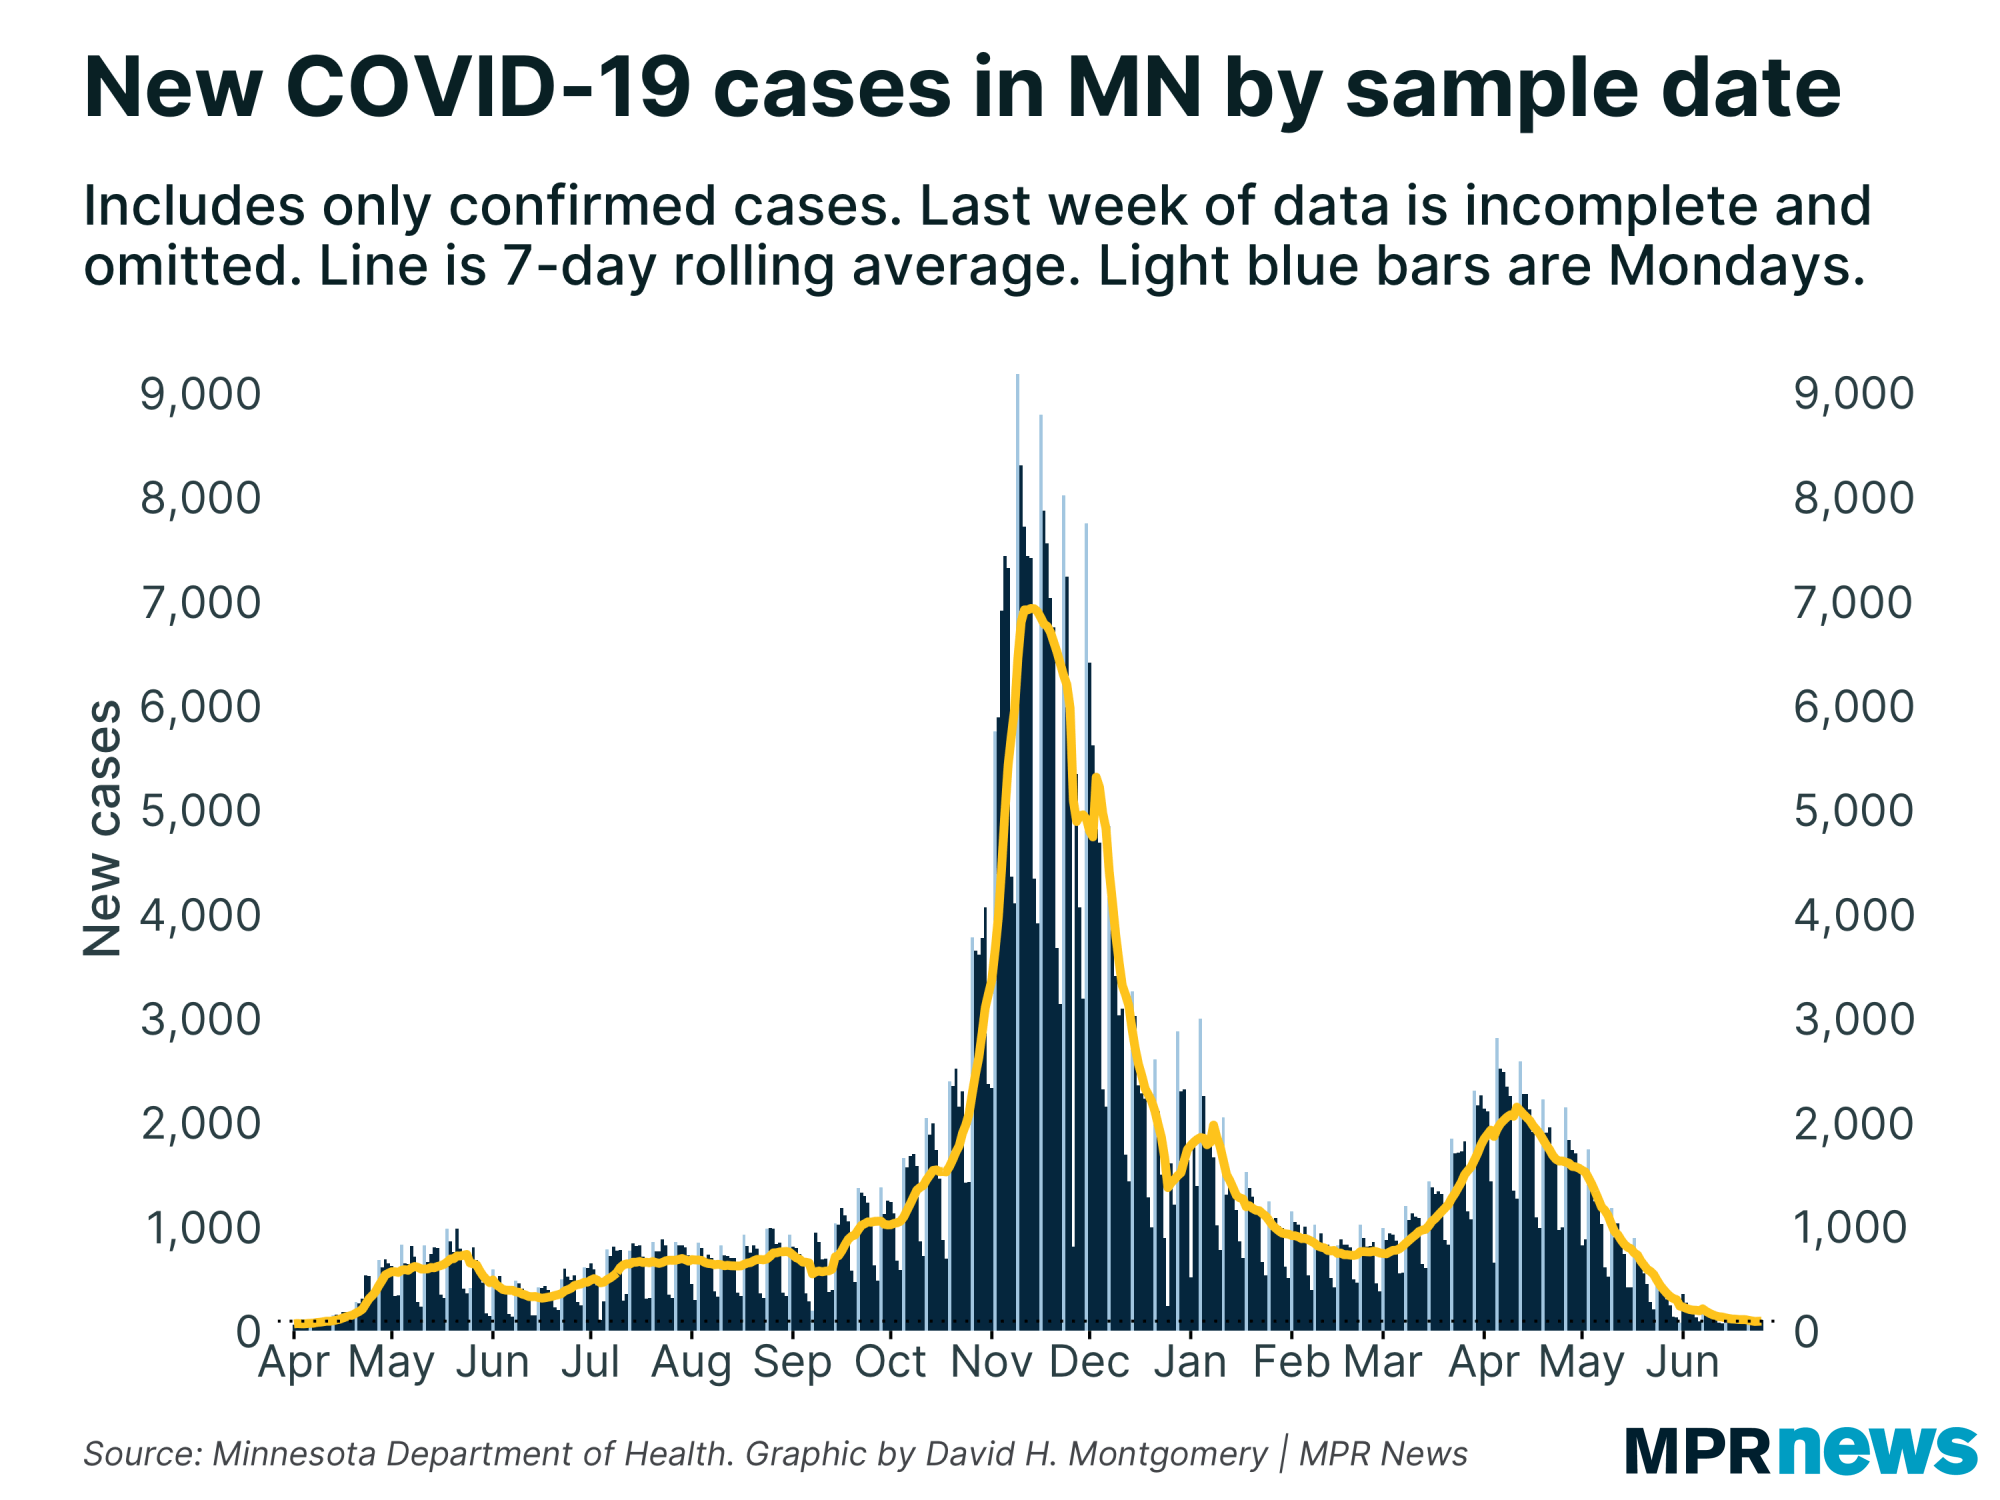 New COVID-19 cases in Minnesota by sample date